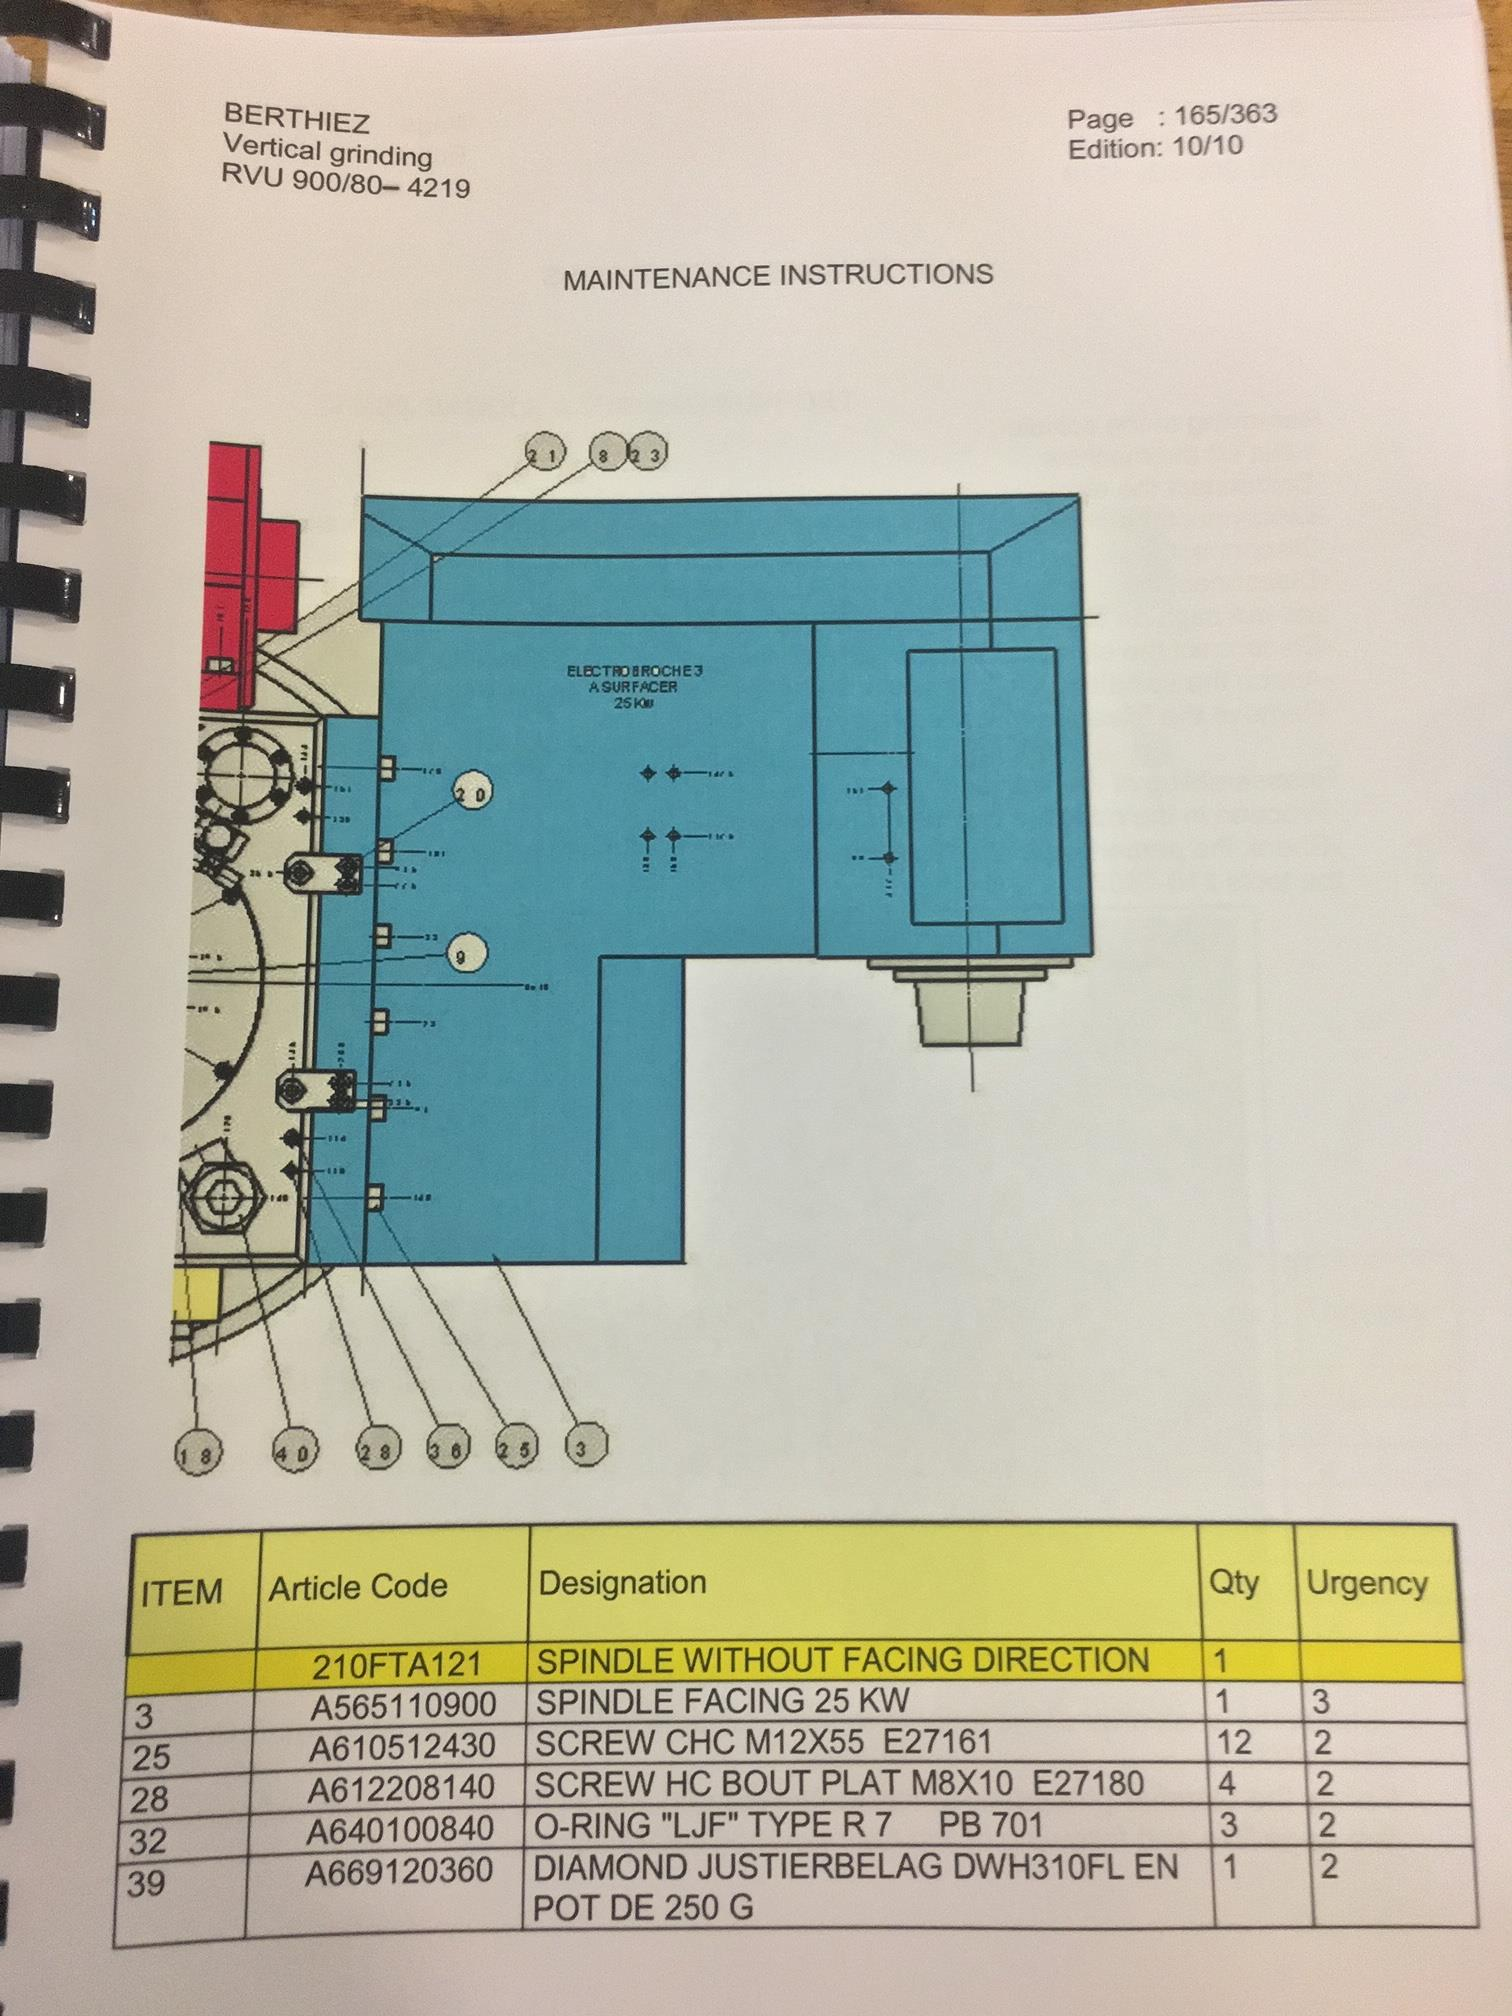 BERTHIEZ MODEL RVU 900/80 ID/OD, WITH TURNING, VERTICAL CNC GRINDER; S/N 4219, 84OD SIEMENS CONTROL - Image 32 of 33